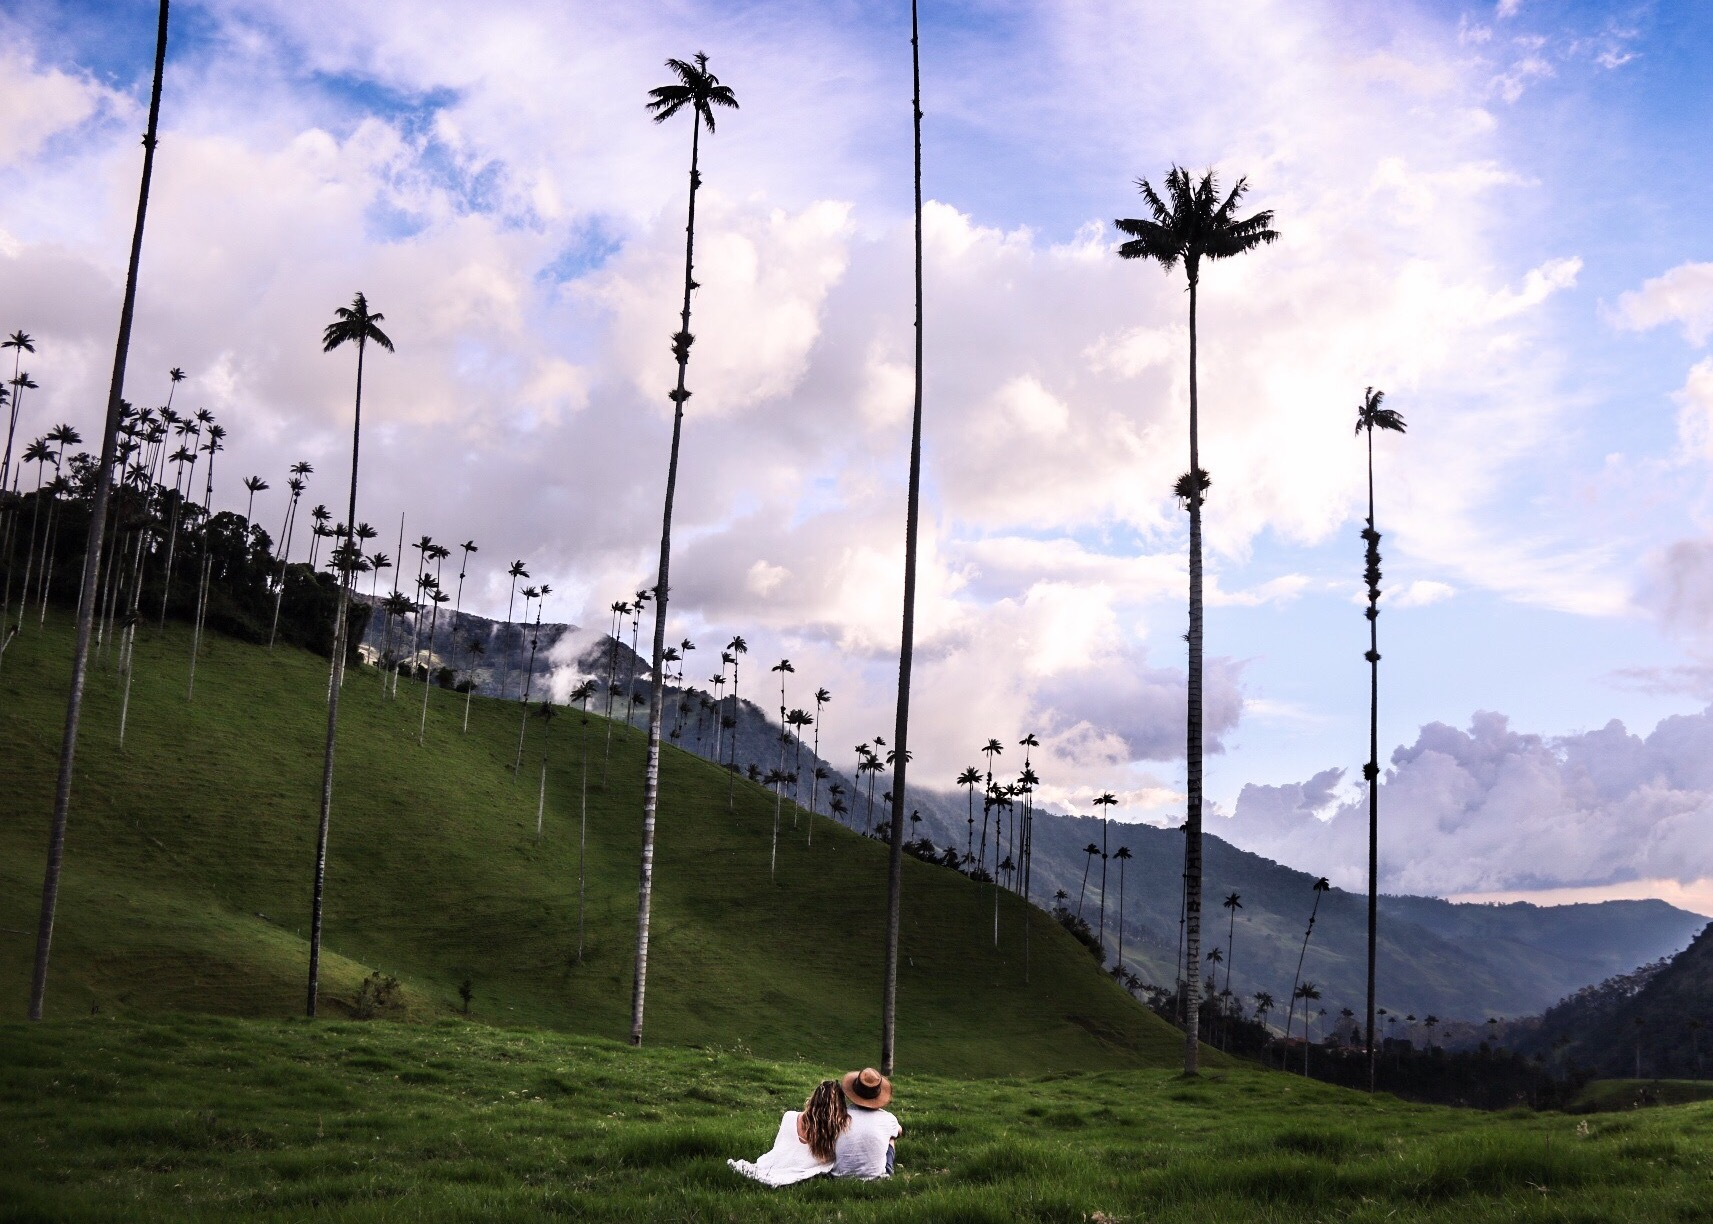 Wax Palms (The tallest in the world) in Valle de Cocora